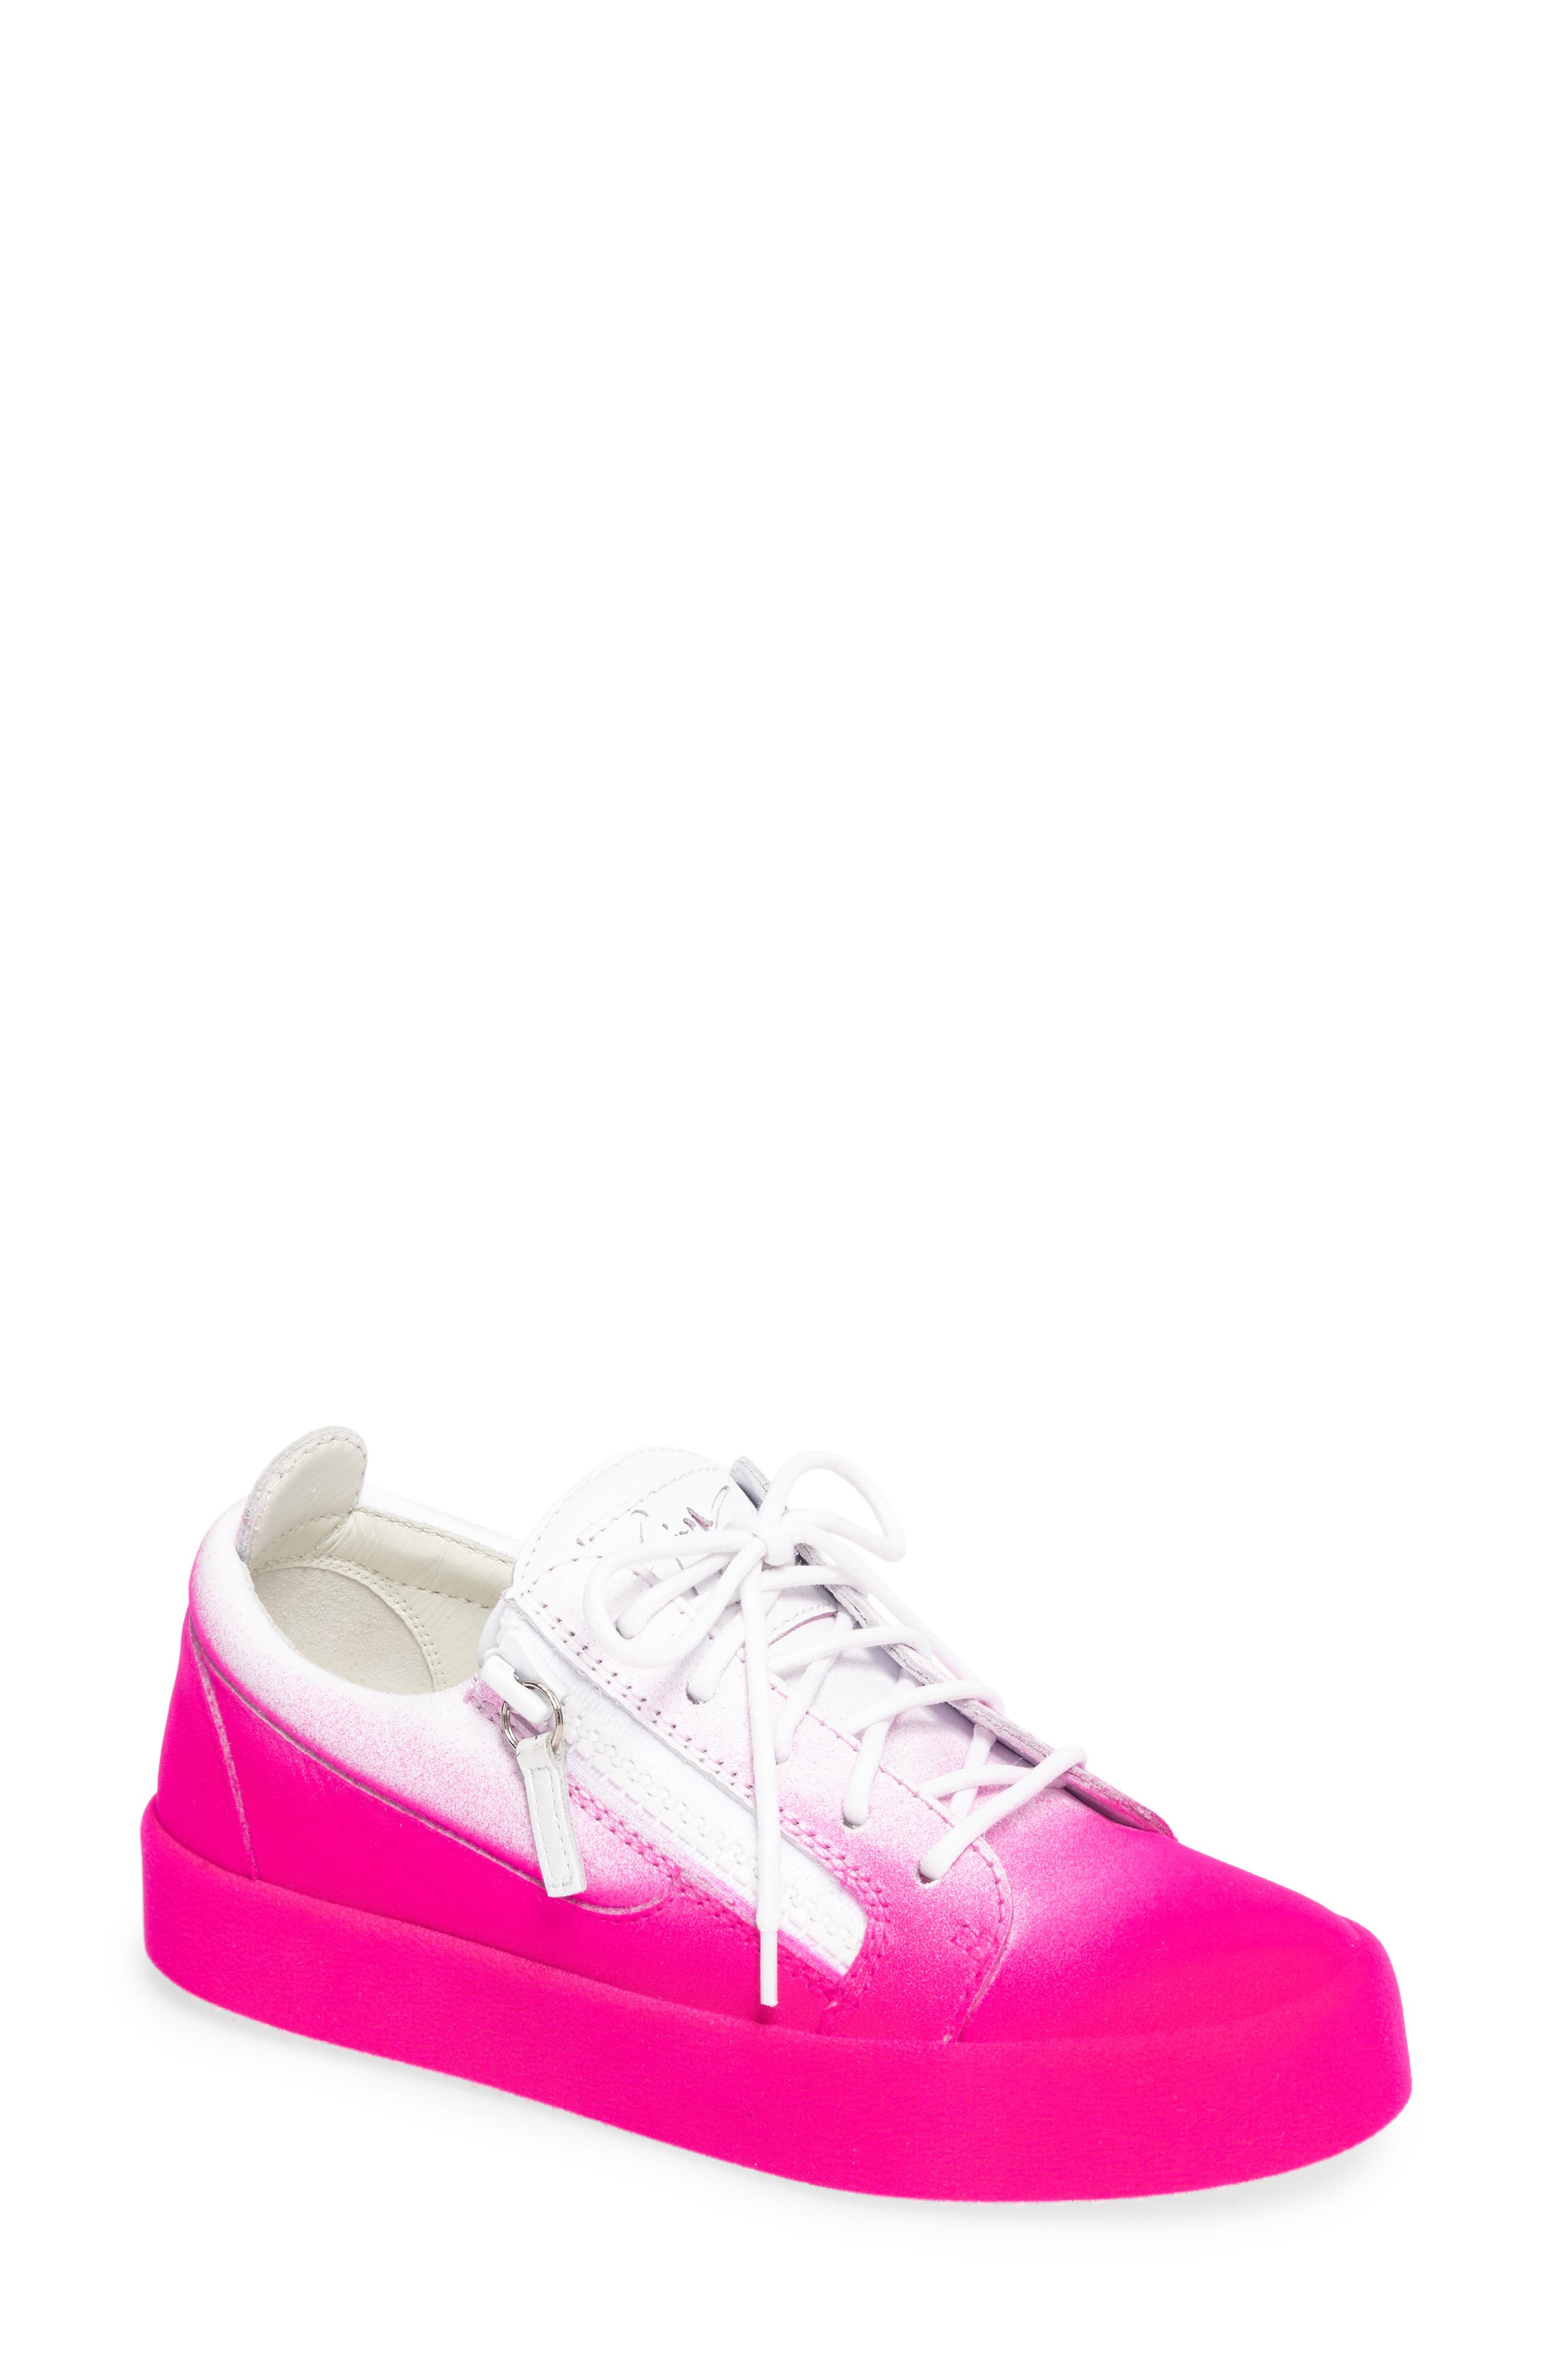 May London Low Top Sneaker,                             Main thumbnail 1, color,                             White/ Pink